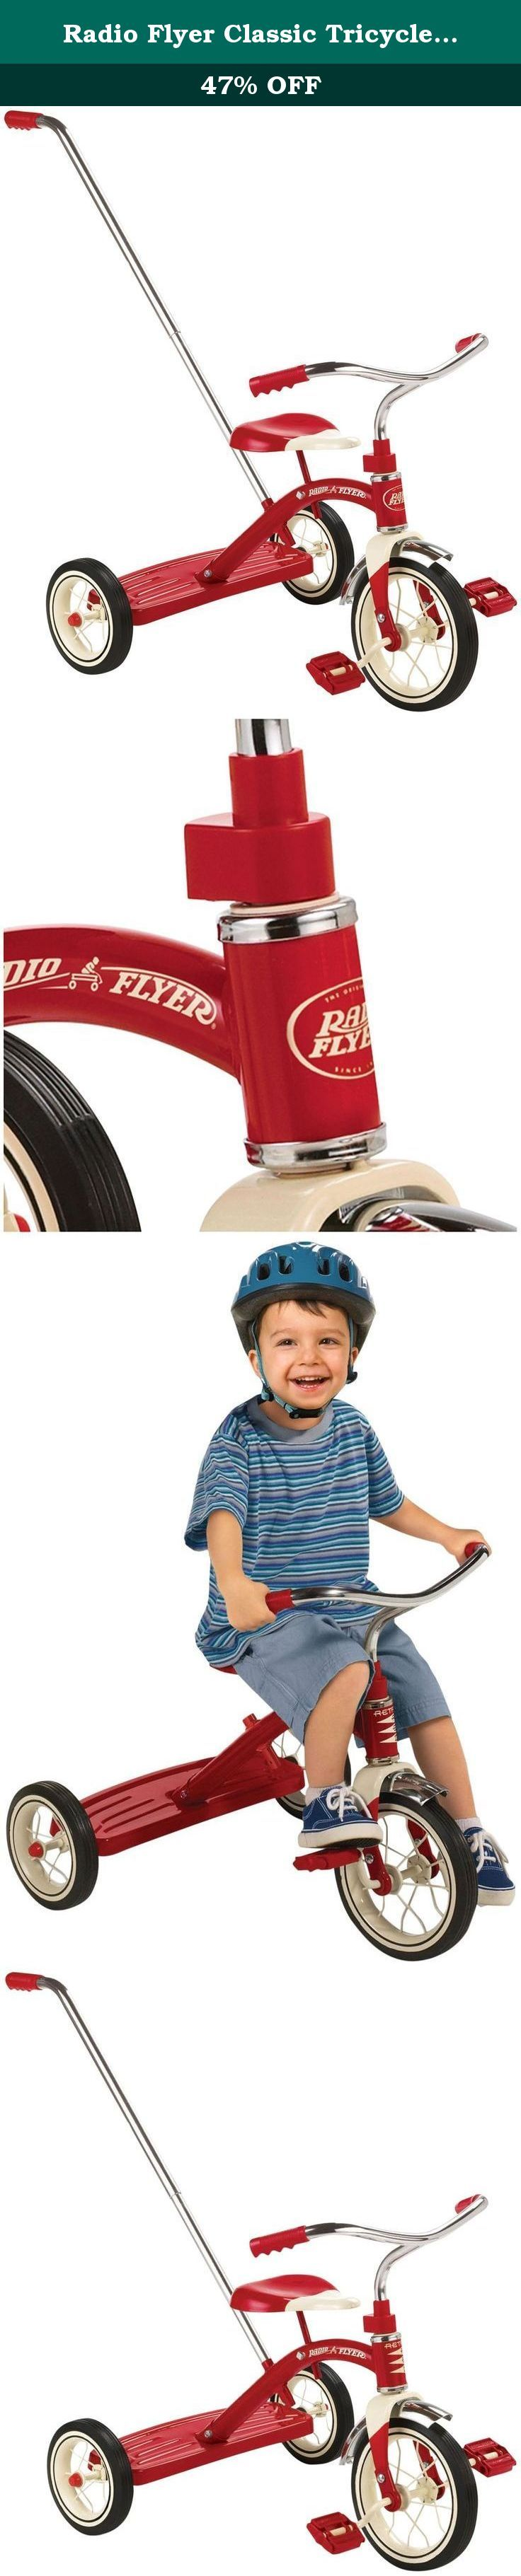 Radio Flyer Classic Tricycle with Push Handle, Red. The Radio Flyer Classic Red Tricycle with Push Handle is great for going to parks or around the neighborhood. The removable 3-position adjustable handle helps guide your child's ride. This sturdy trike also features steel construction, durable spoked wheels, a 10-Inch front wheel and real rubber tires. The controlled turning radius prevents tipping for safe and confident riding. This bright red tricycle is classically styled and includes...